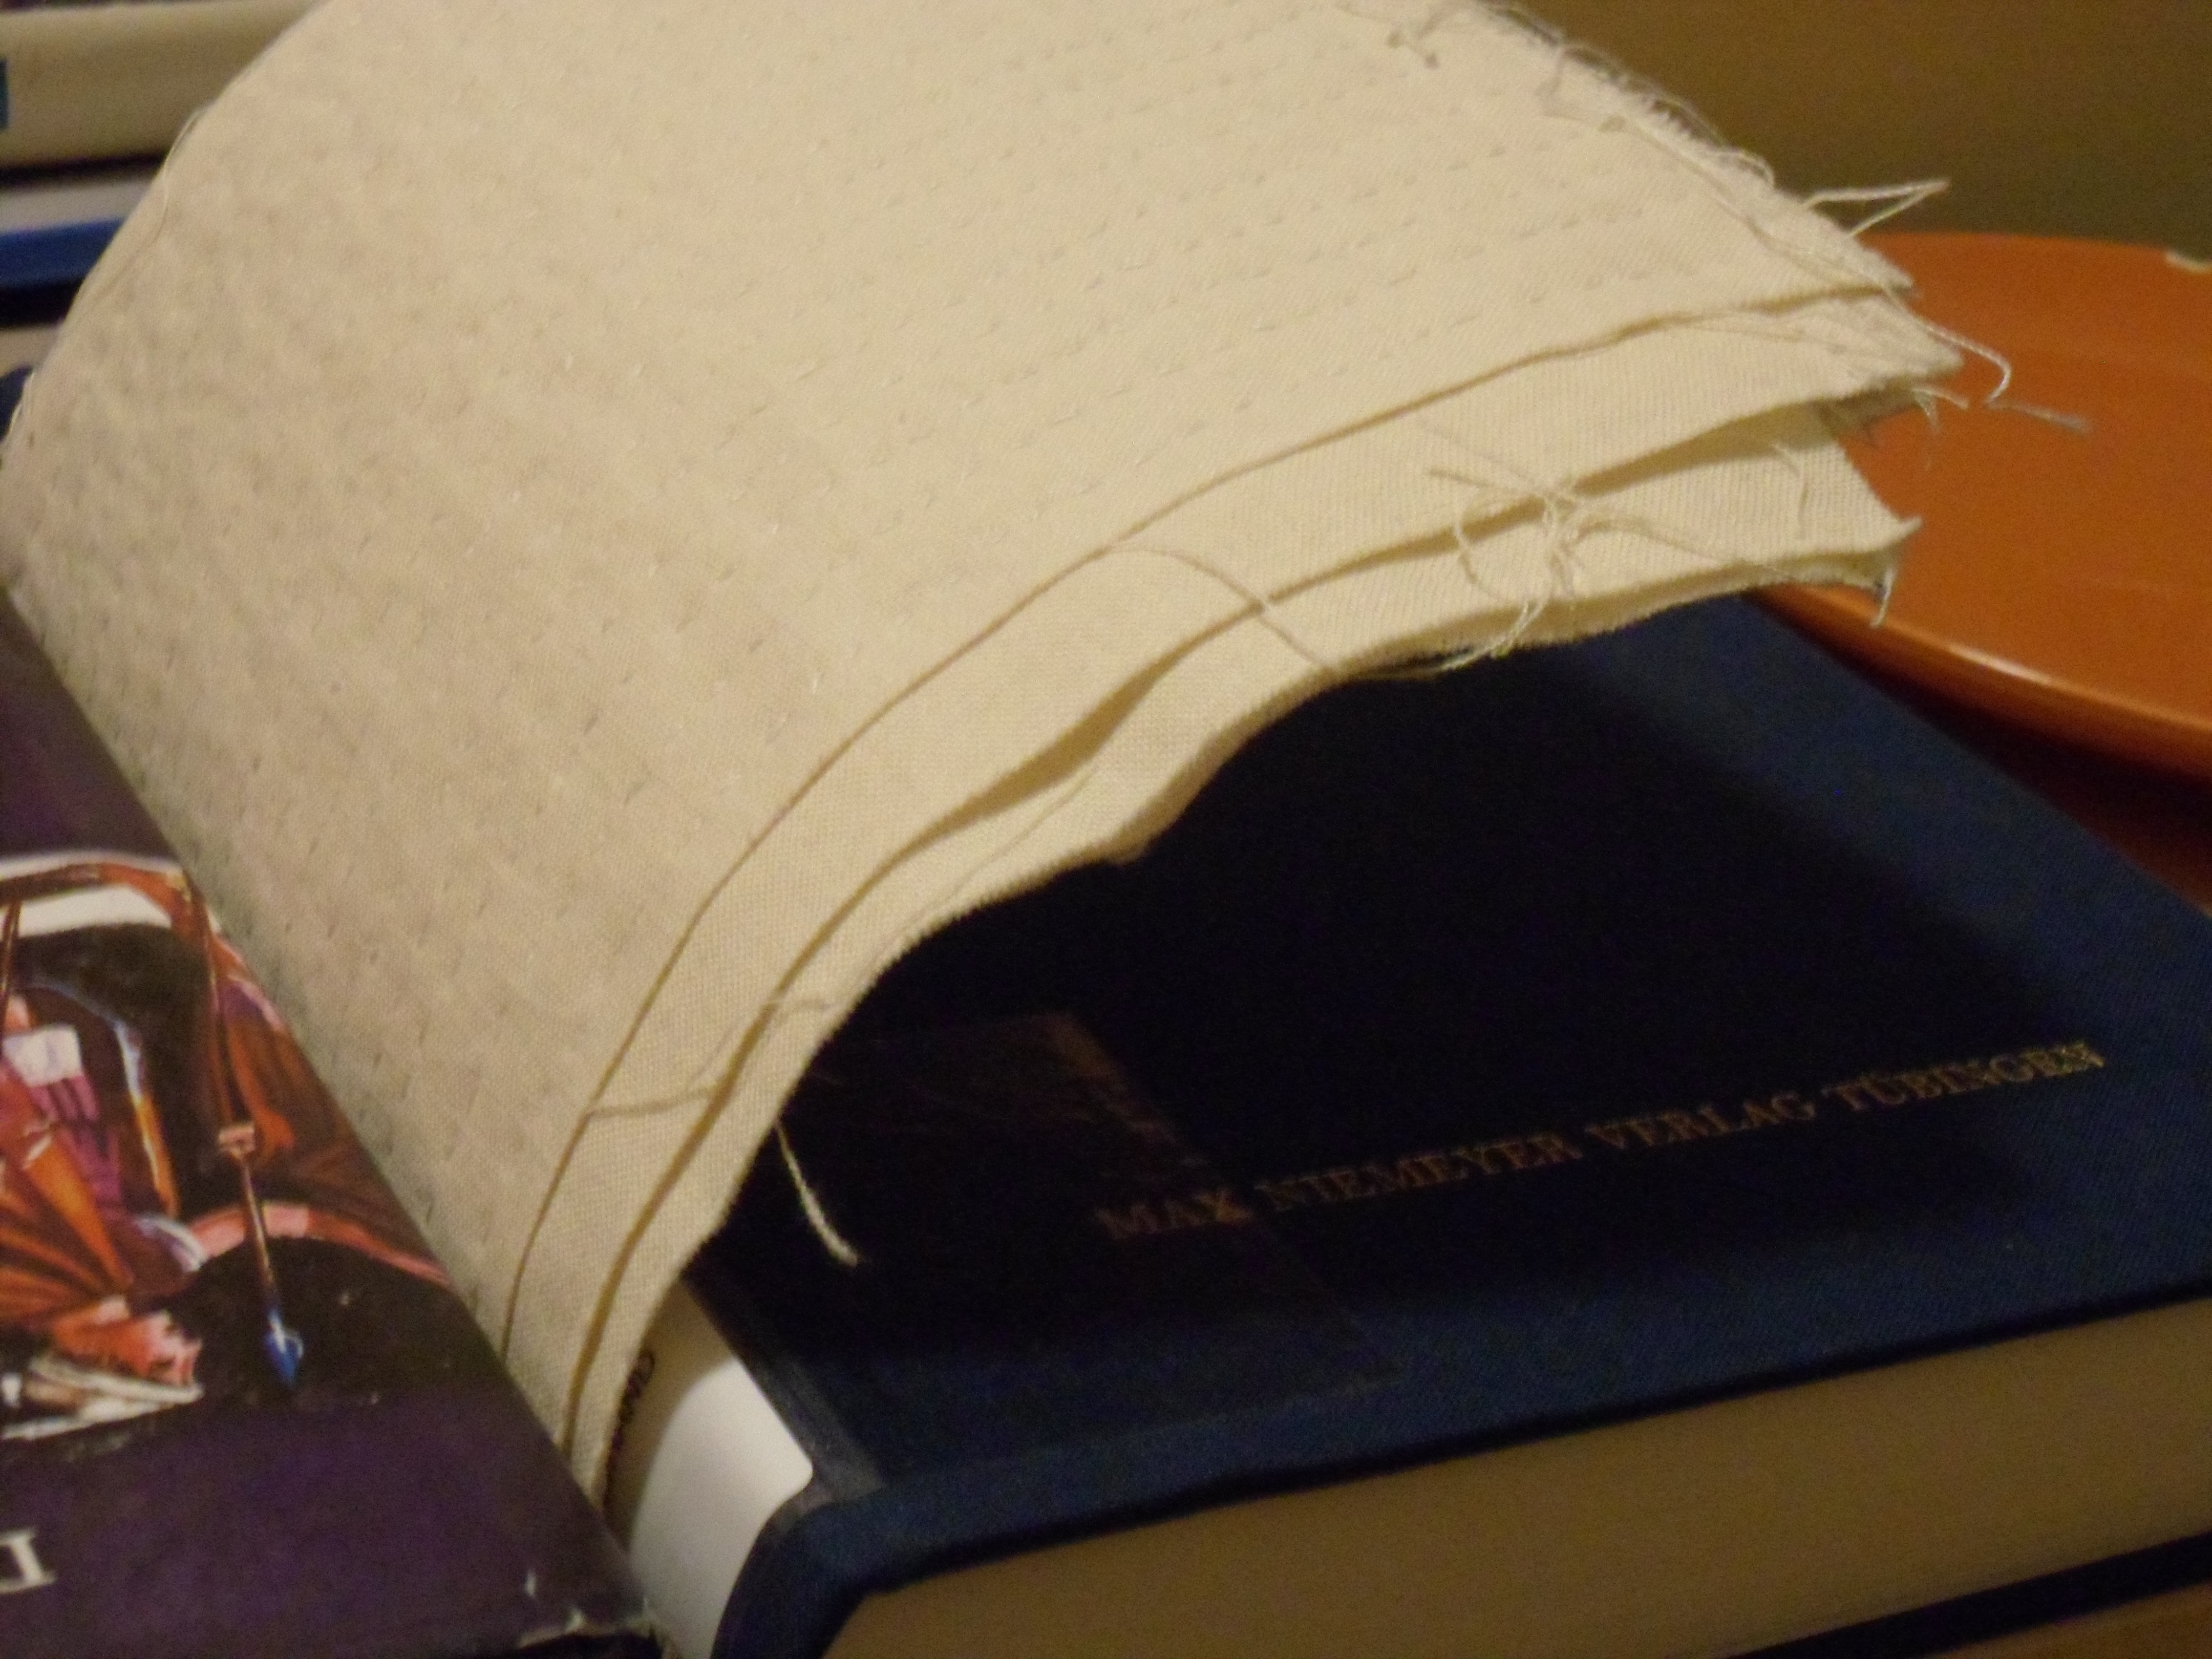 See caption.  The third book has been removed, and the opposite edge is at least a handsbreadth  (7 cm) above the surface of the book beneath it.